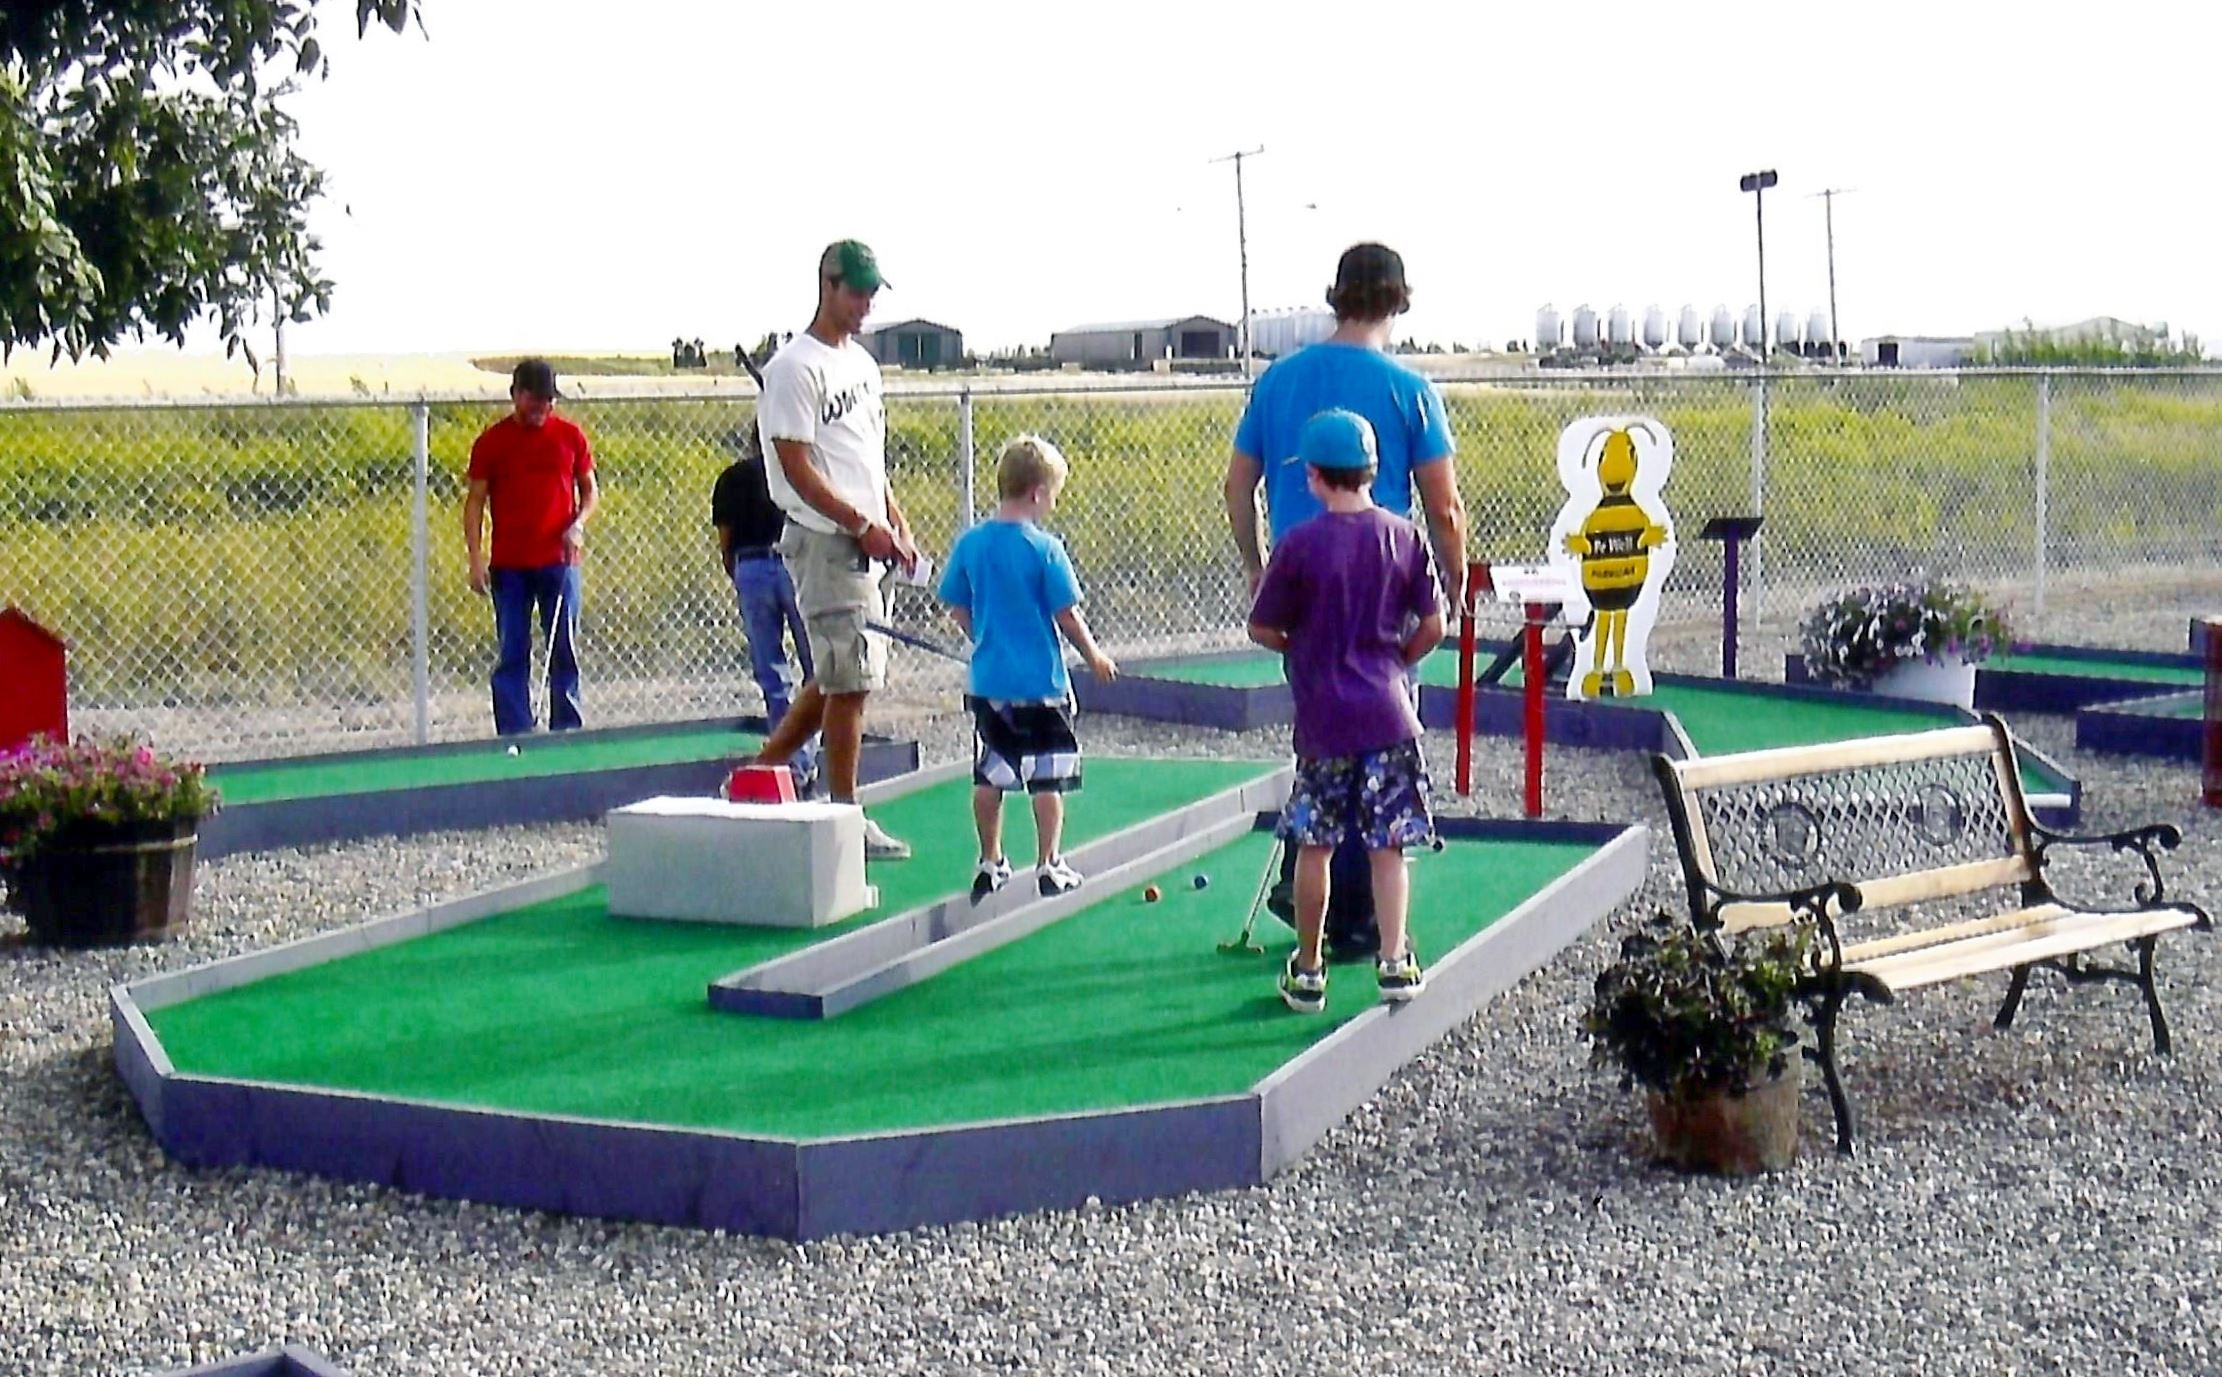 Rosetown Tourism Centre Mini-Golf Course